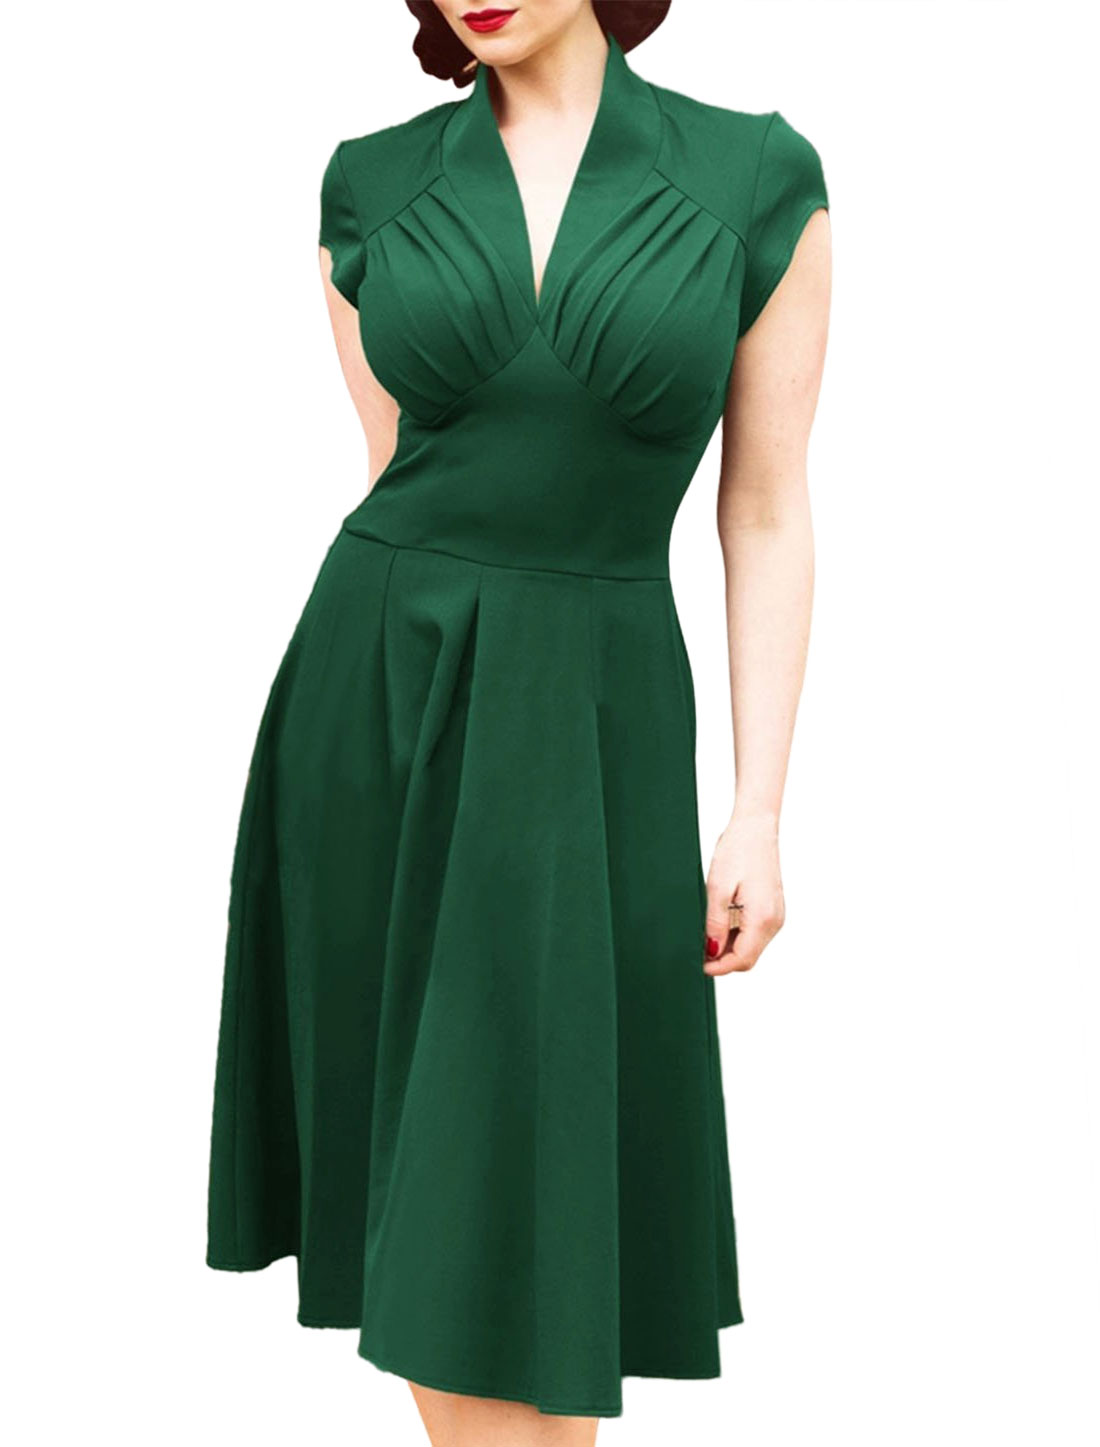 Women V Neck Ruched Cap Sleeves Fit and Flare Dress Green L